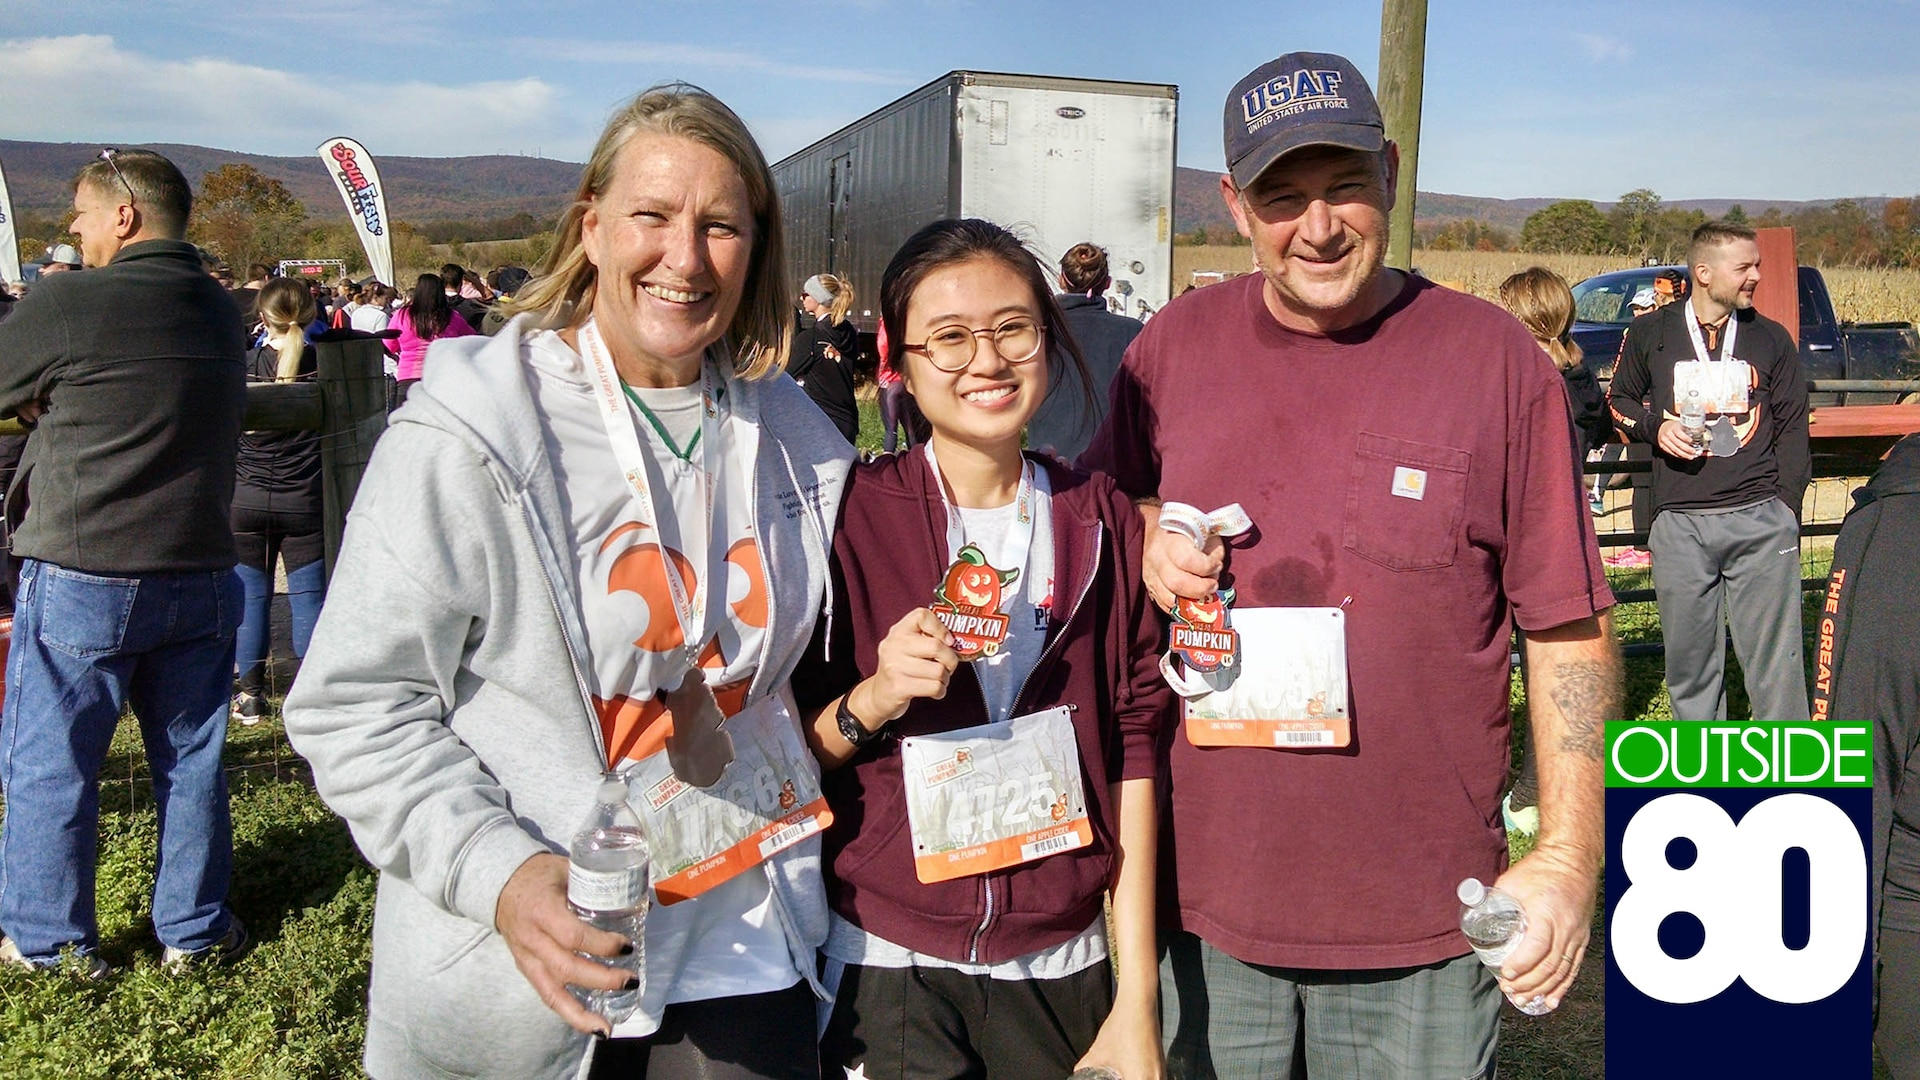 Tammy Van Scyoc, a Defense Contract Management Agency Small Business Office program analyst, Vasiporn, a 17-year-old high school junior and Thailand native, and Van Scyoc's husband Michael participated in the 2017 Great Pumpkin Run in Frederick, Maryland. For the past school year, Vasiporn has lived with the Van Scyoc's as part of the Program of Academic Exchange.